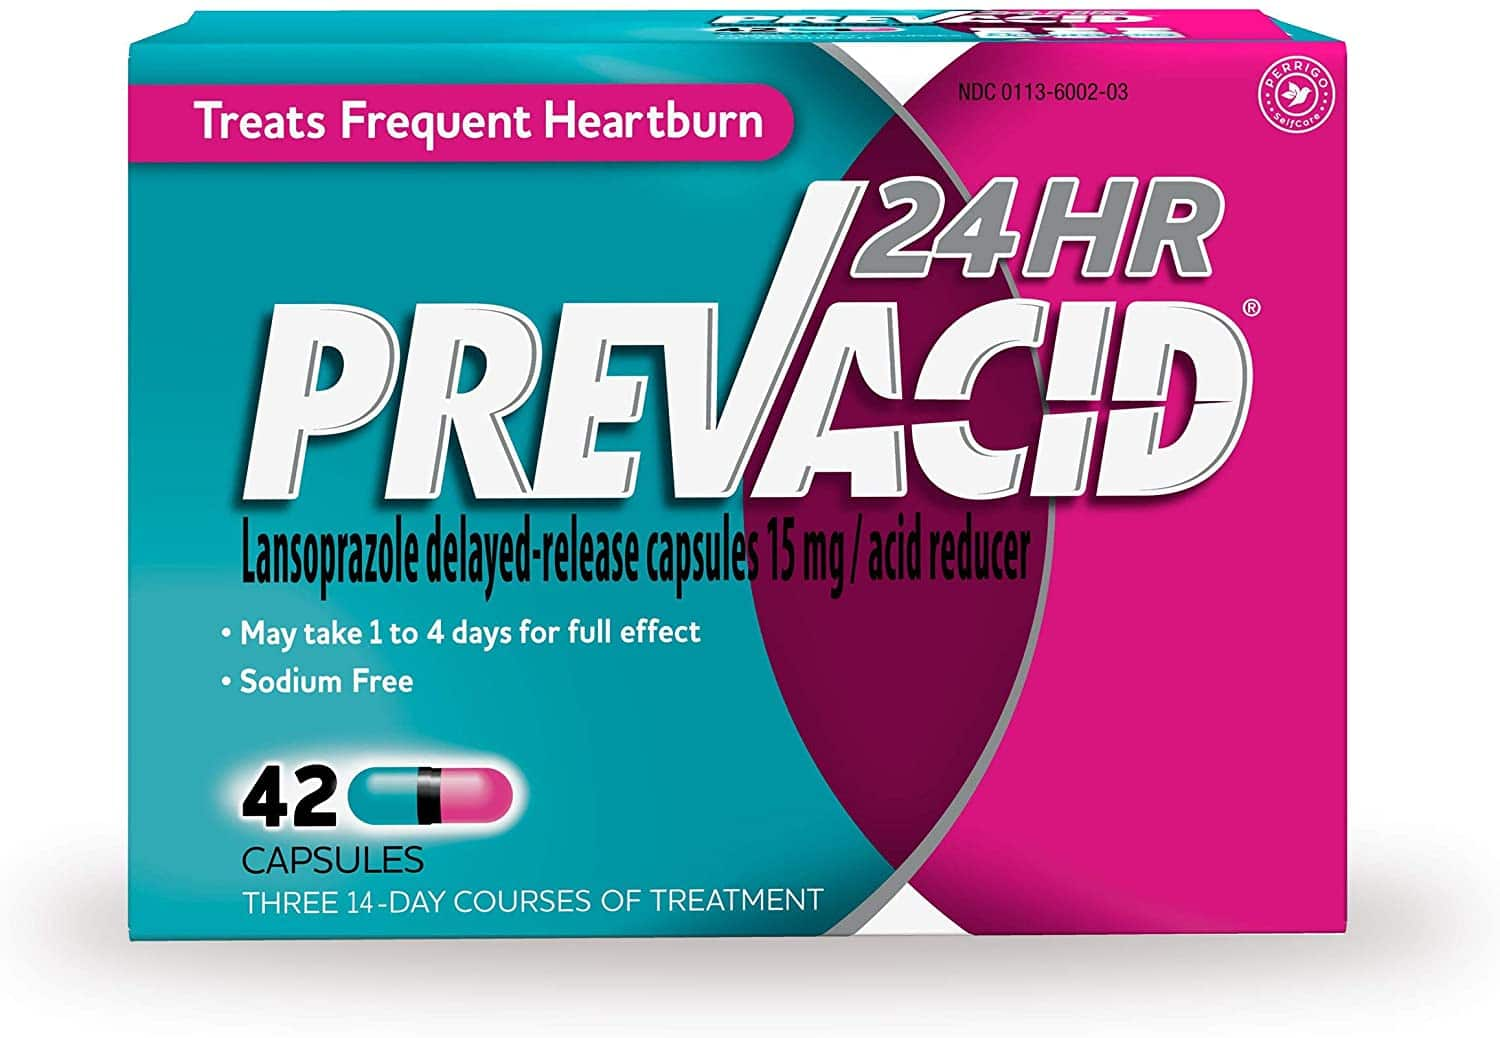 Prevacid 24HR Lansoprazole Delayed-Release Capsules, 15 mg- Proton Pump Inhibitor (PPI) for Heartburn Relief, 42 Count for $11.85 at Amazon